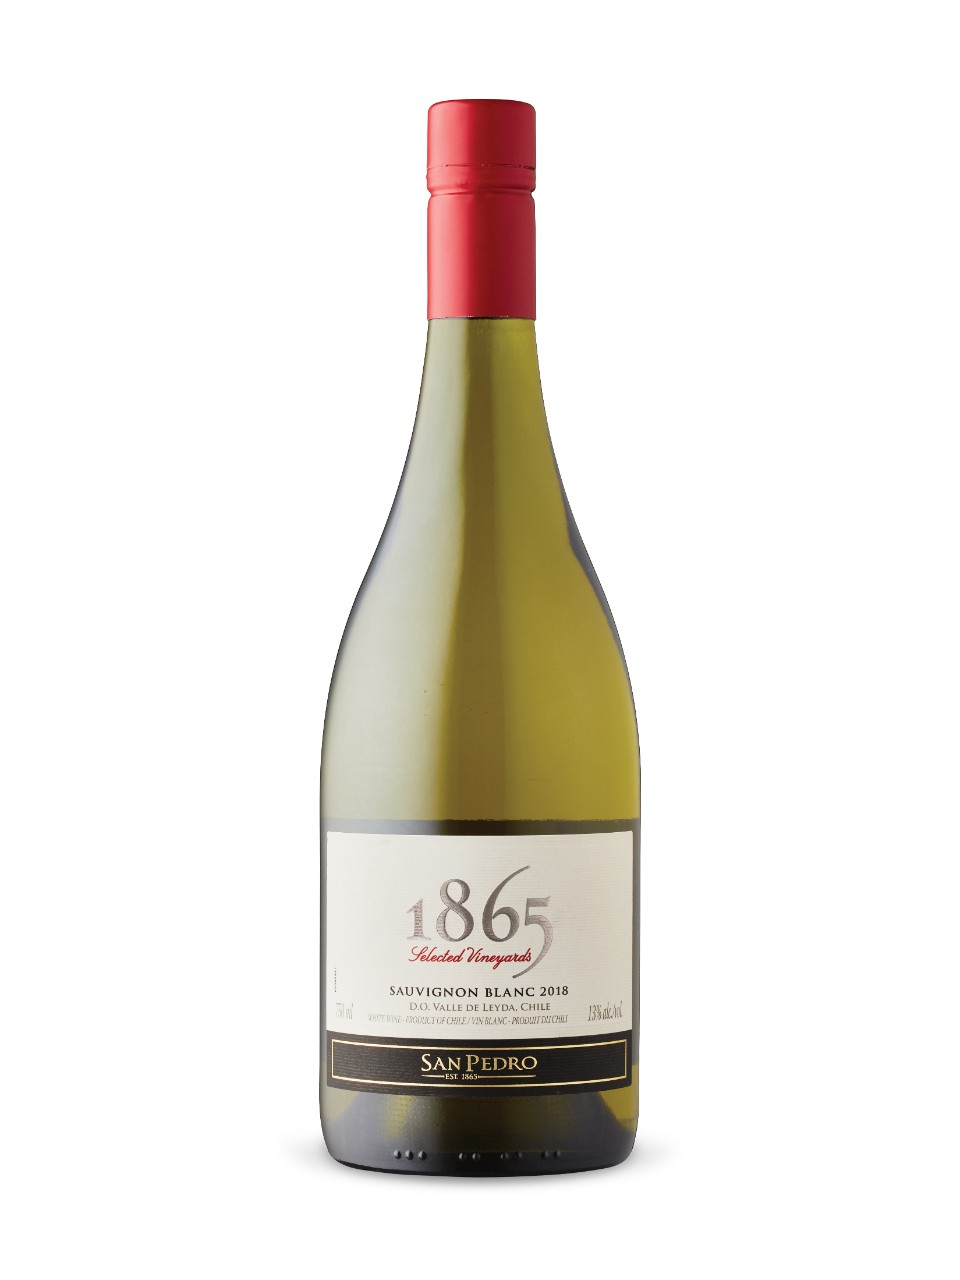 San Pedro 1865 Selected Vineyards Sauvignon Blanc 2018 from LCBO